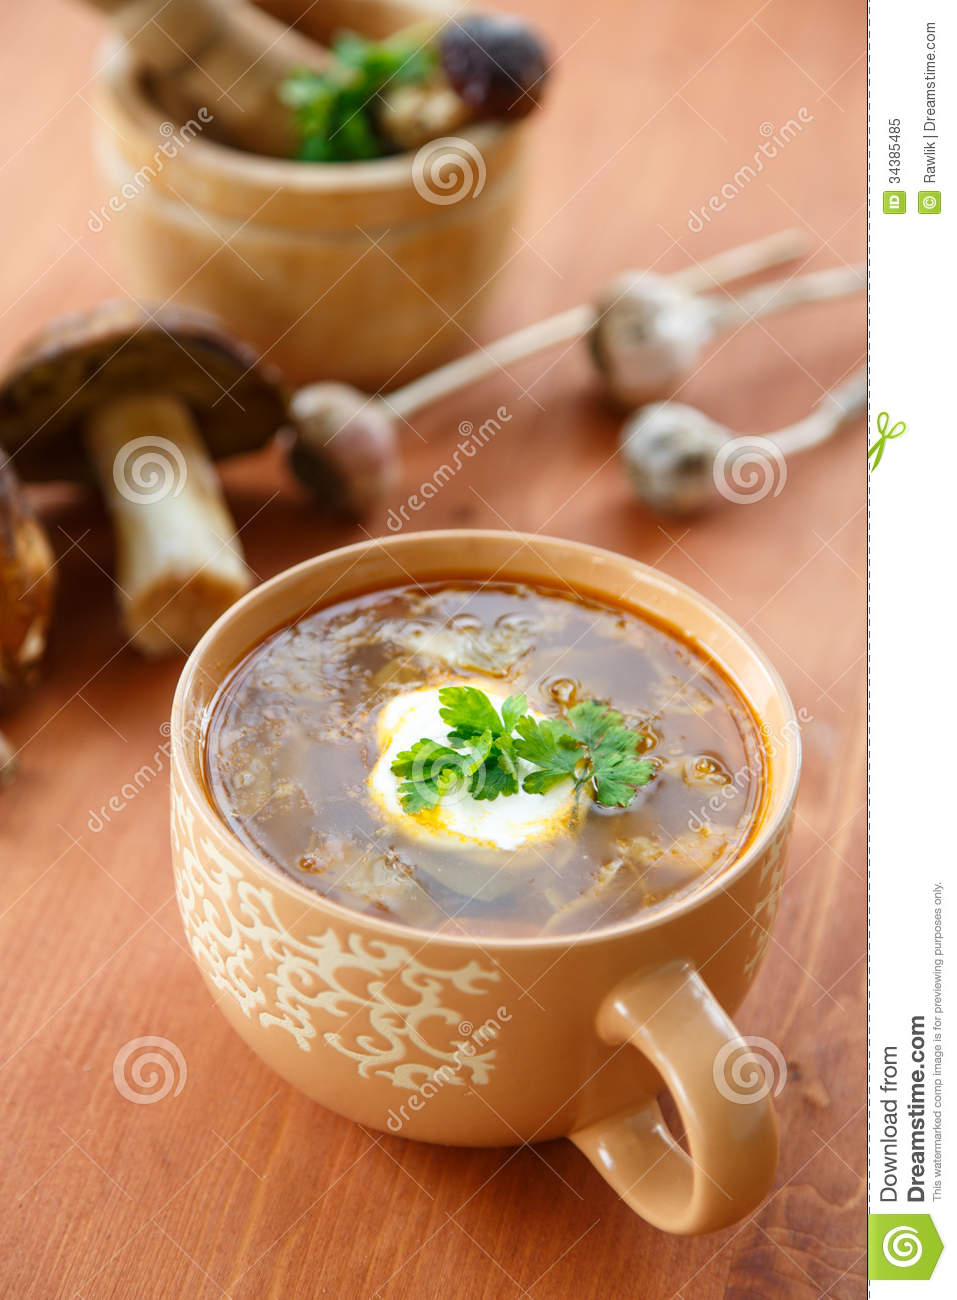 how to prepare mushroom soup